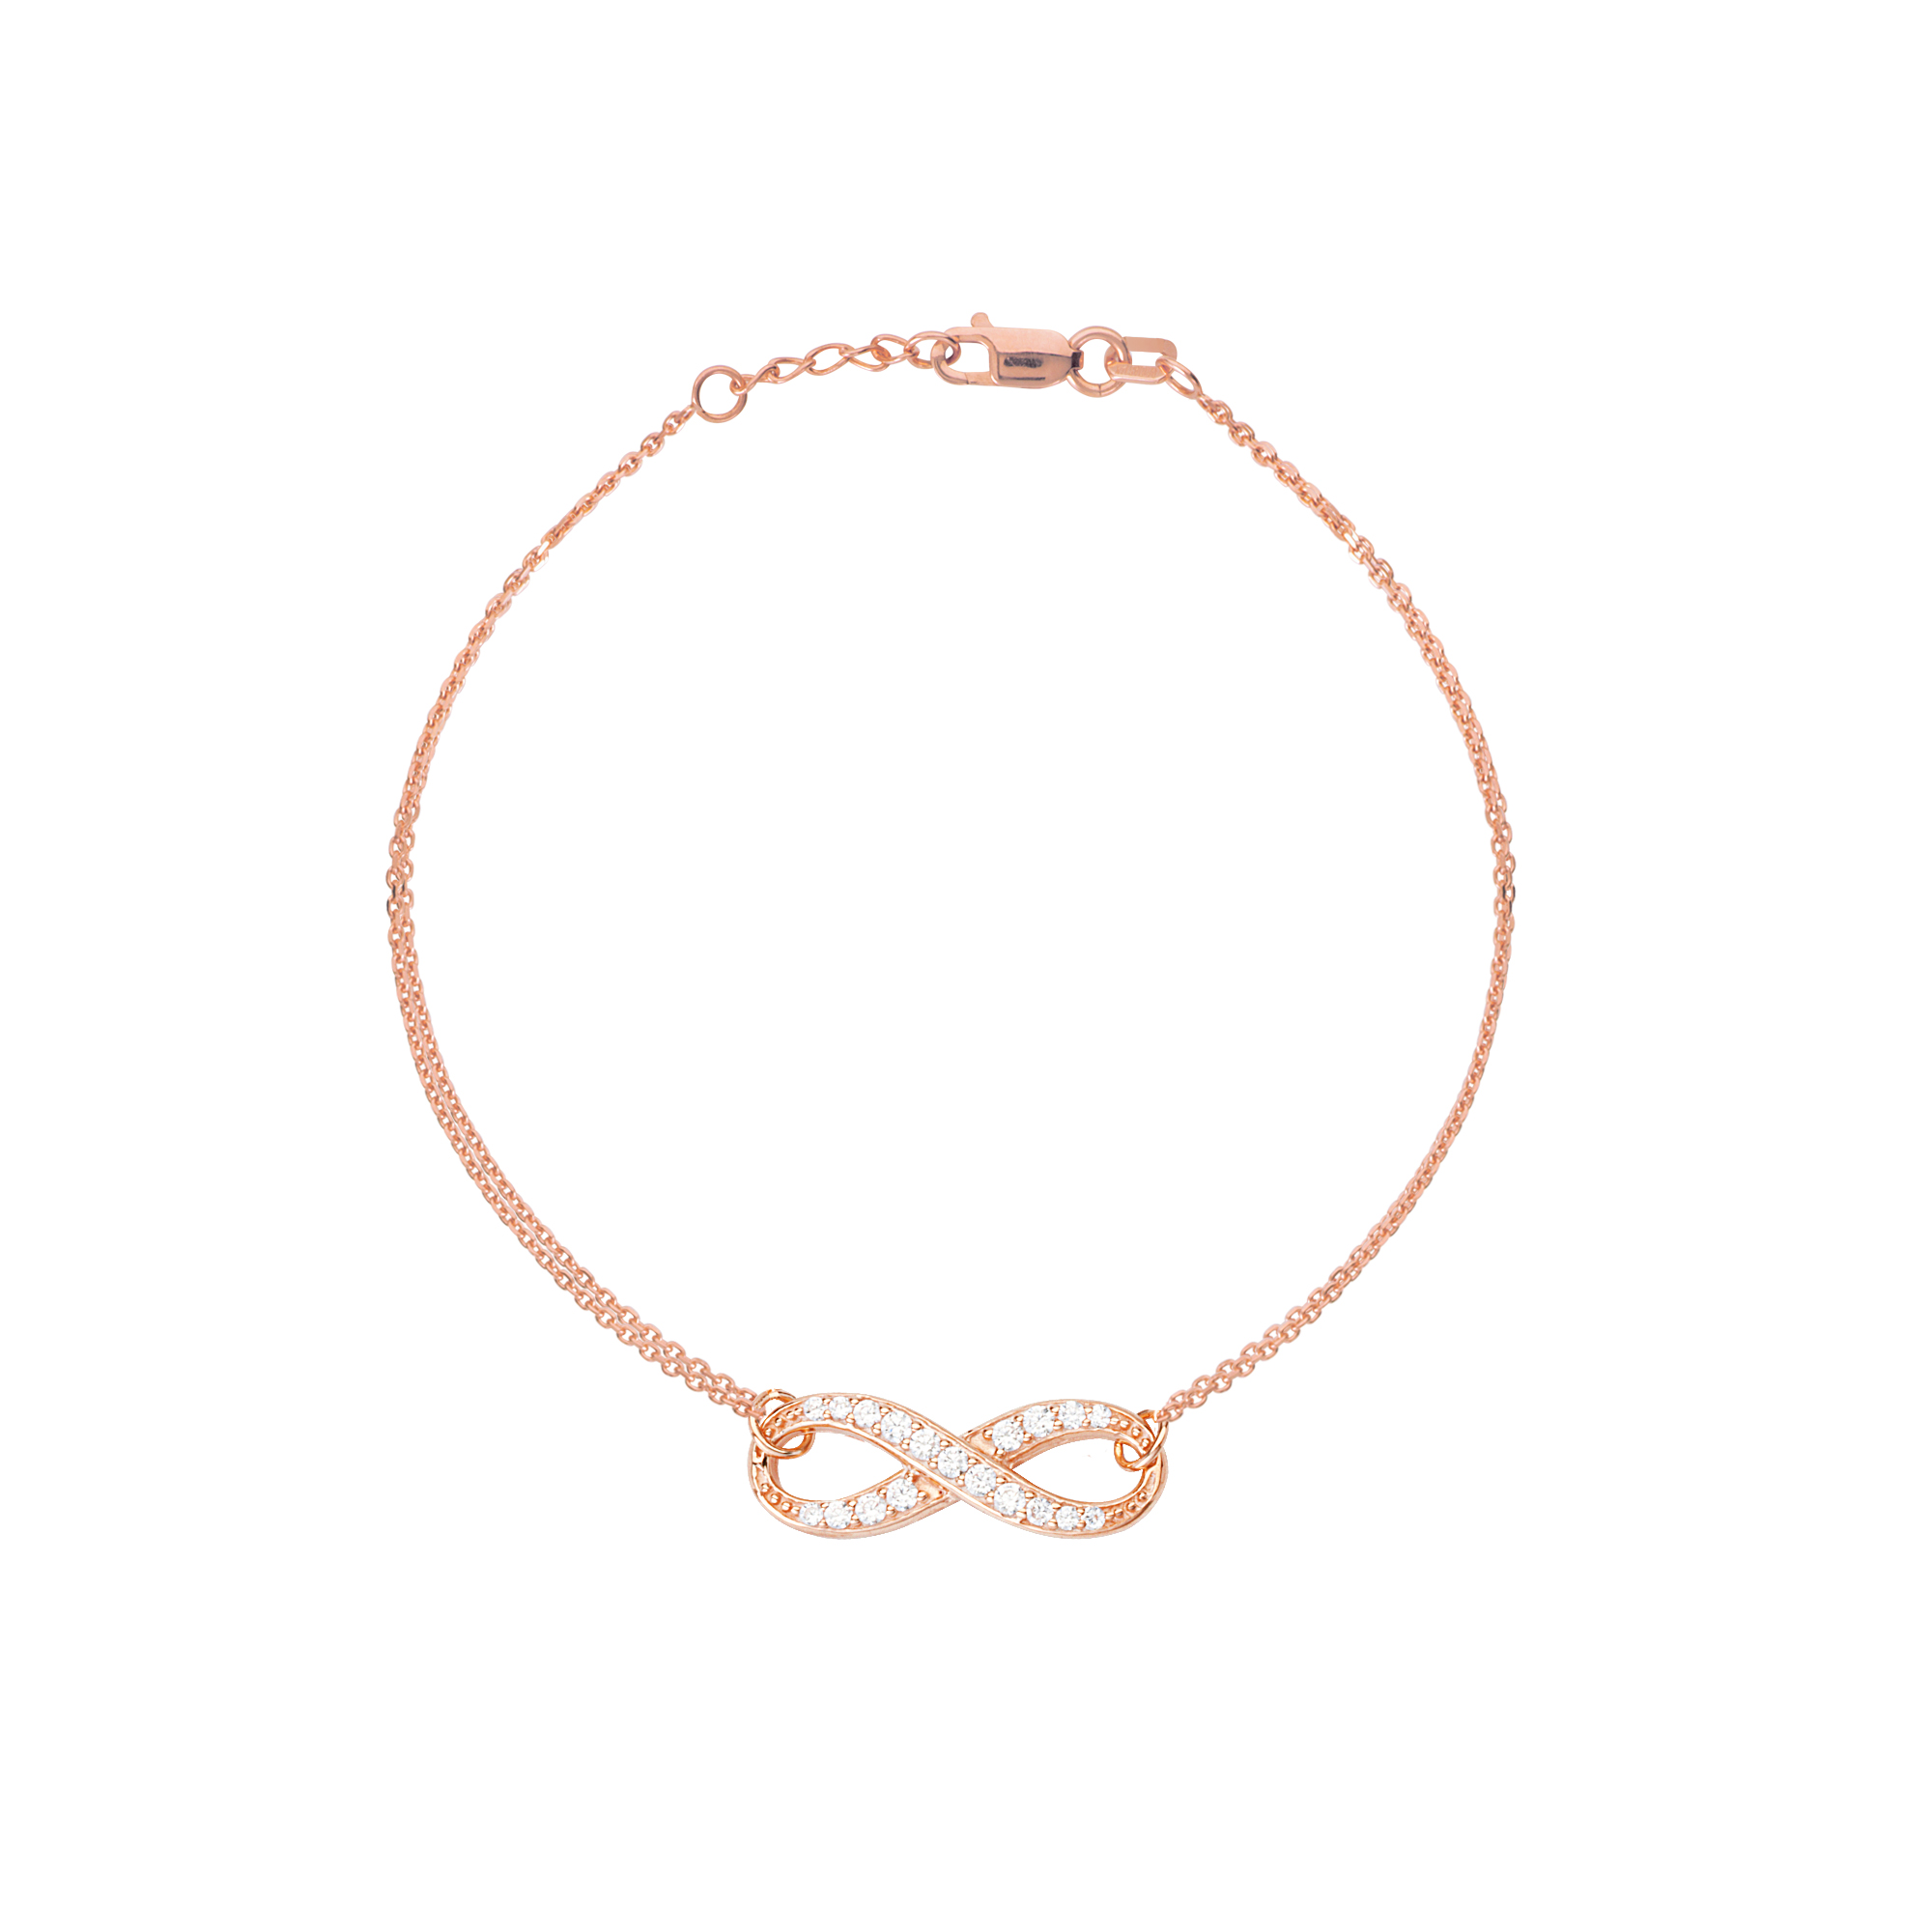 inch chain gold solid bracelet lobster fullxfull rose to claw anklet p il lacr minimalist cable ankle